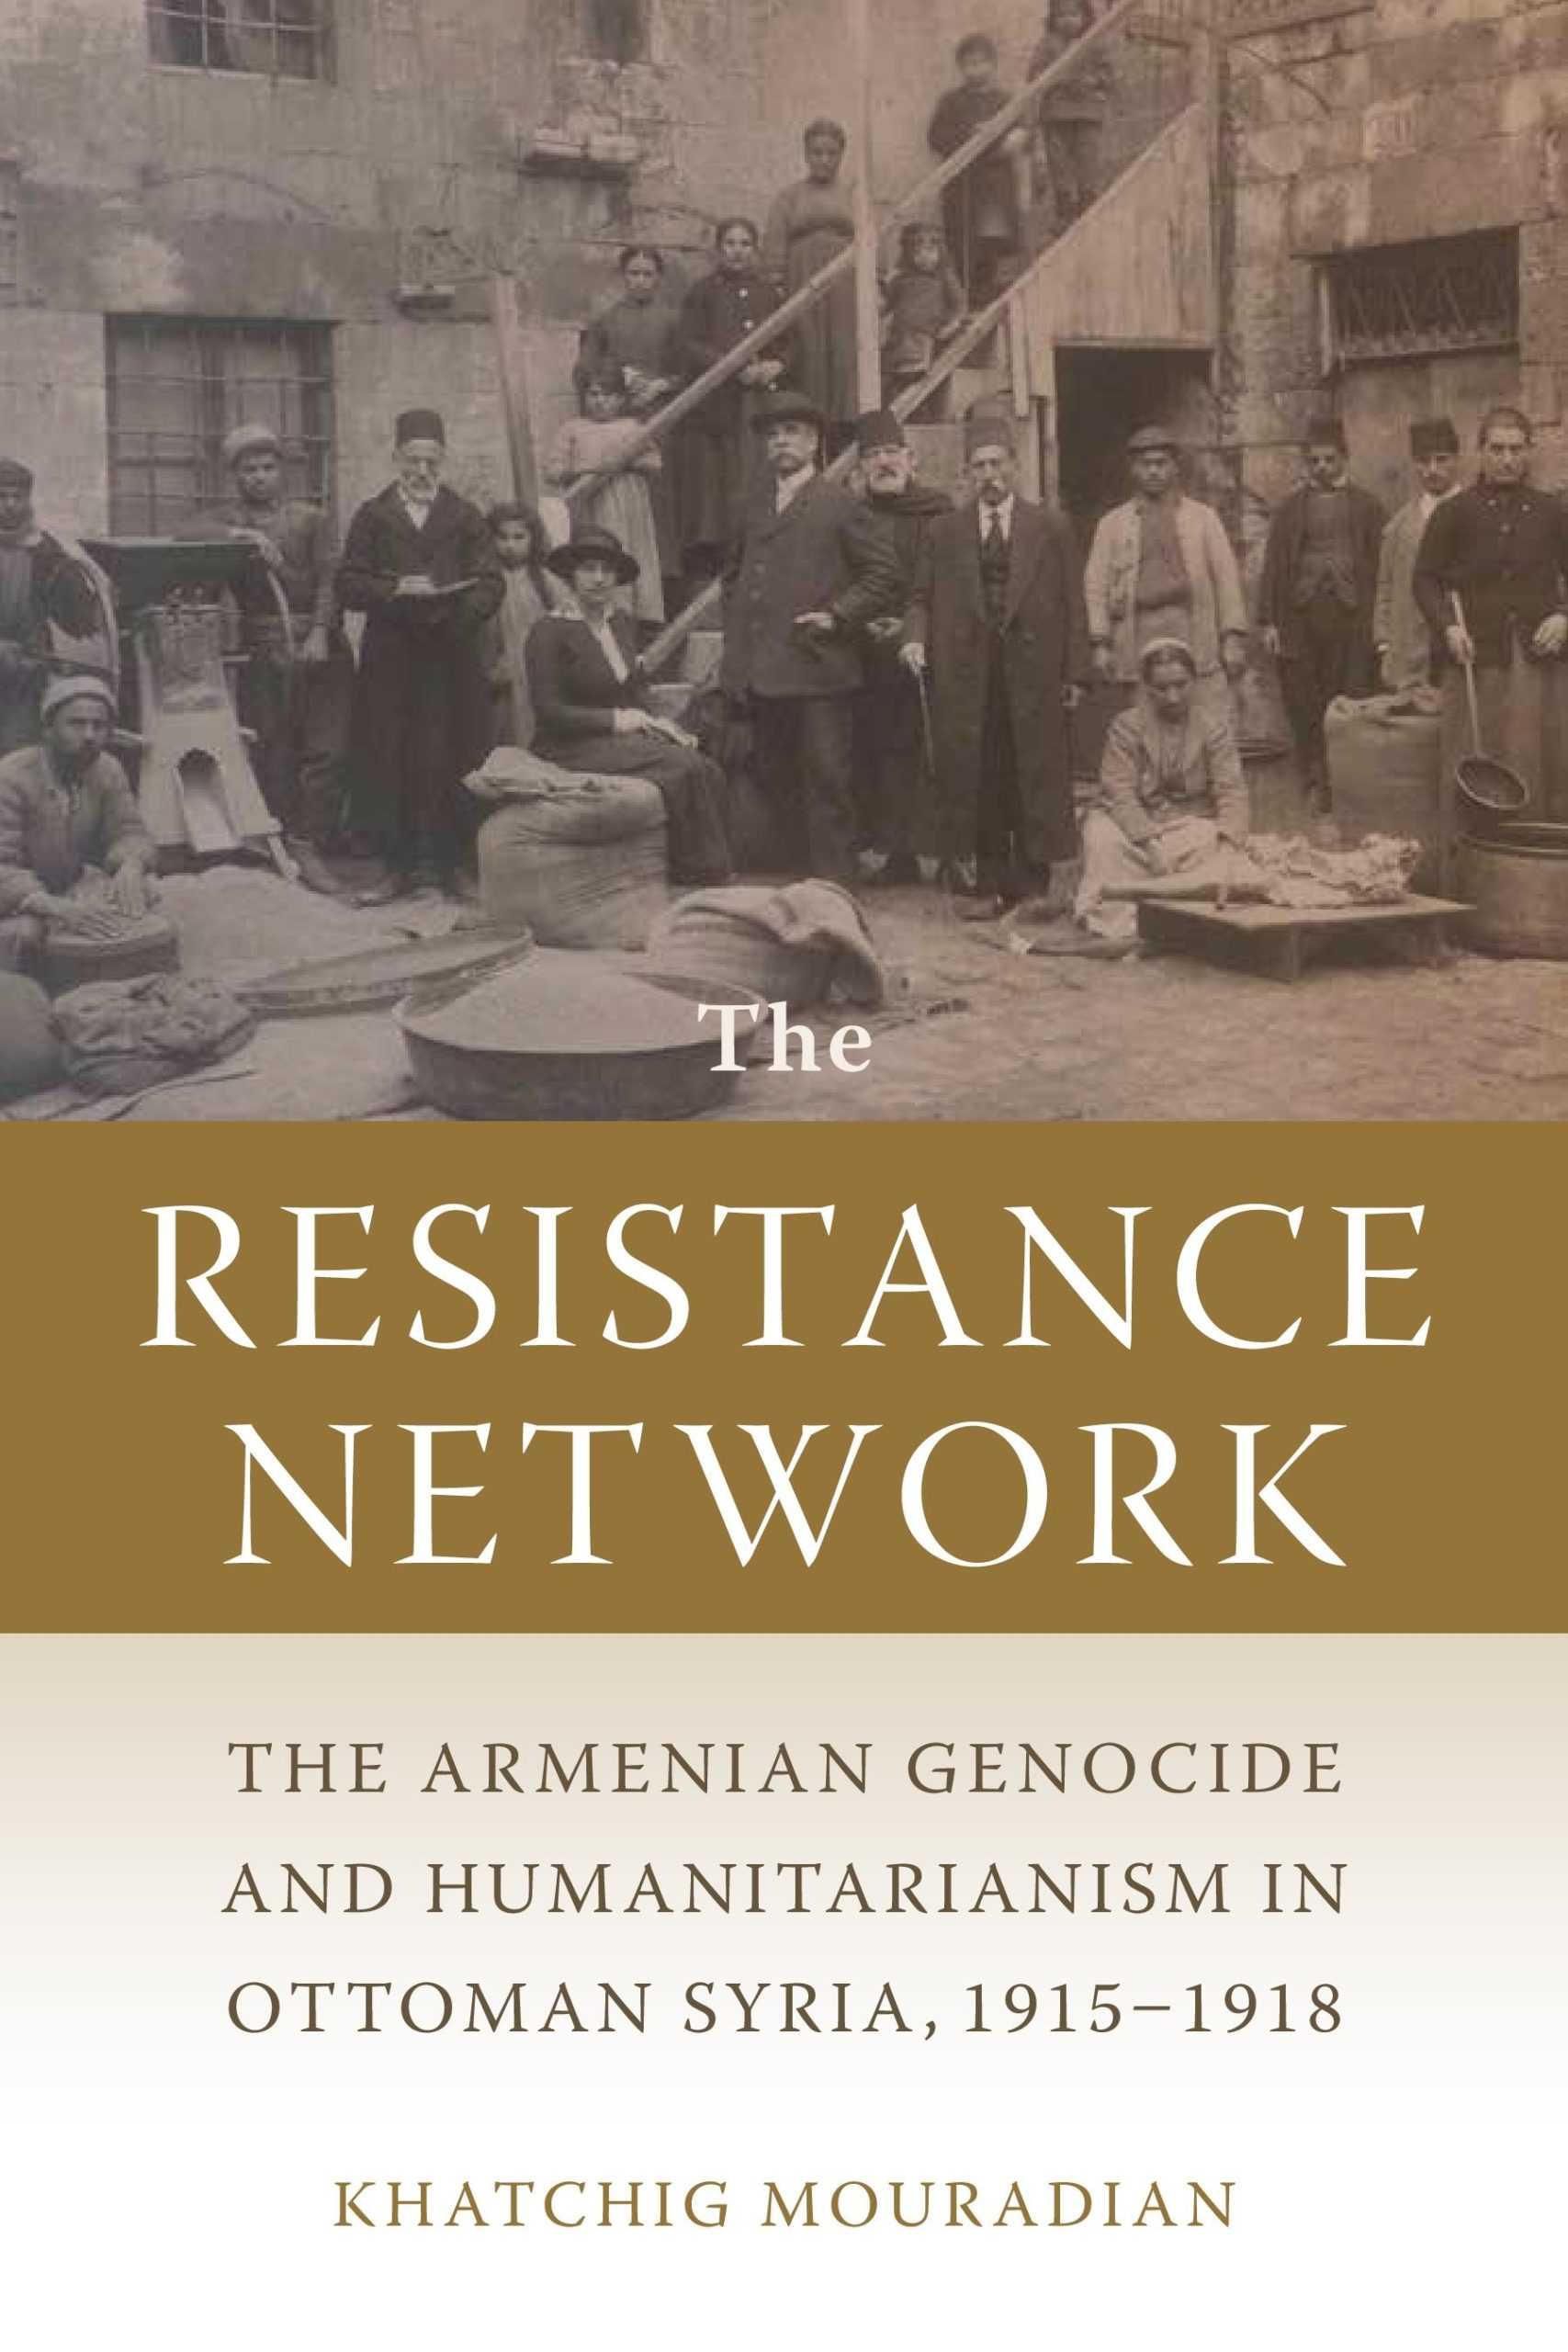 Khatchig Mouradian book cover, The Resistance Network